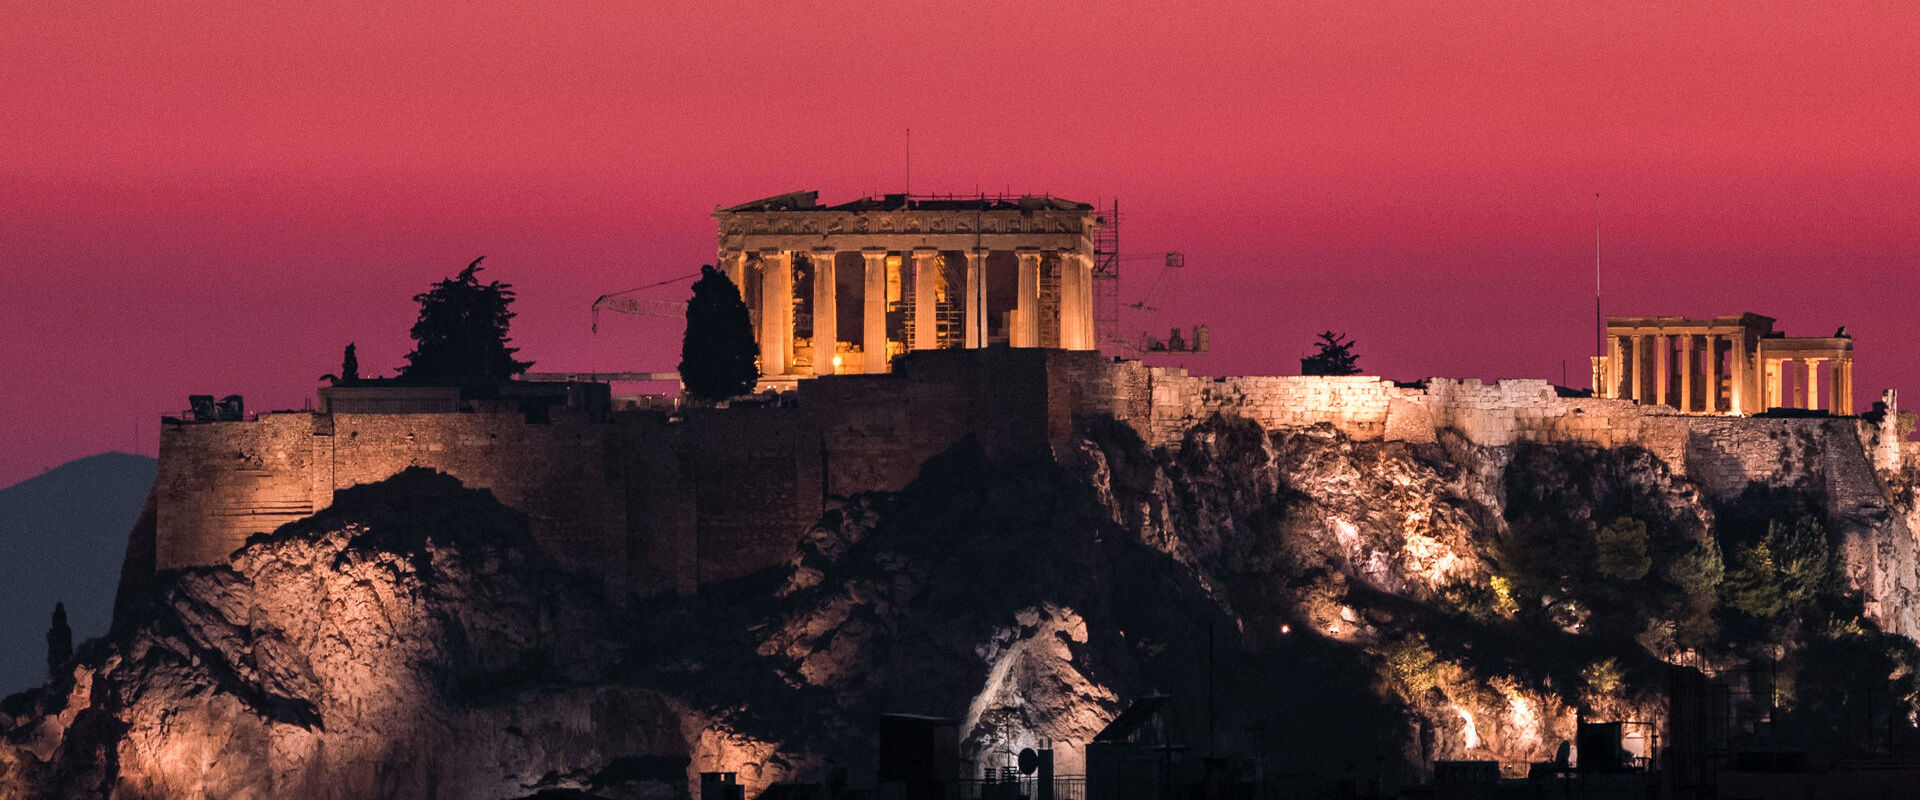 From wherever you catch sight of it in Athens, the Acropolis steals every bit of your attention, escpecially when the lights are on